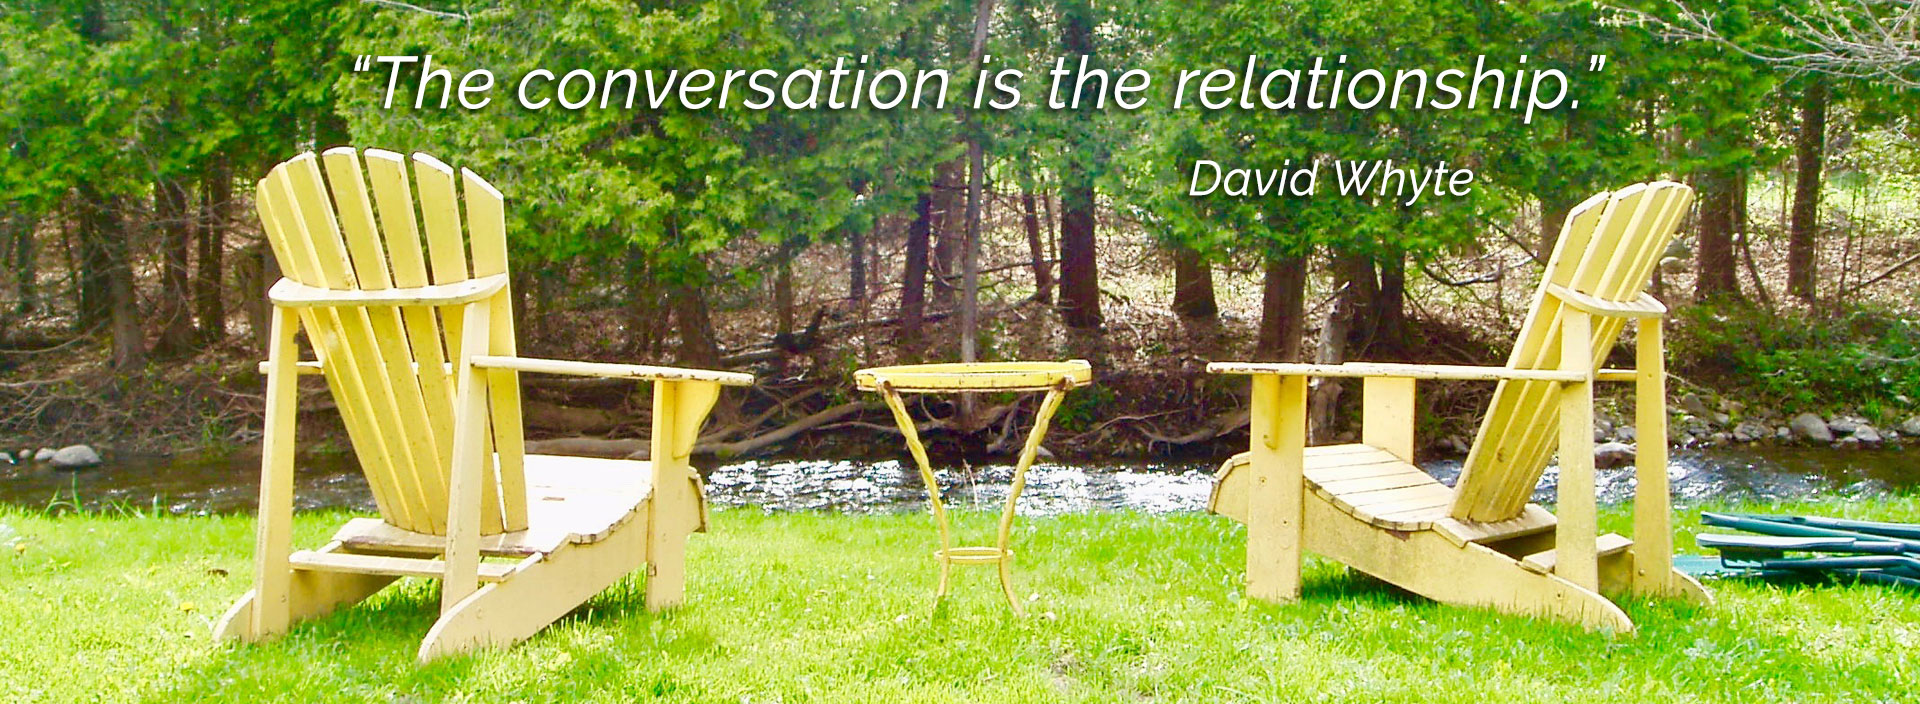 The conversation is the relationship - David Whyte